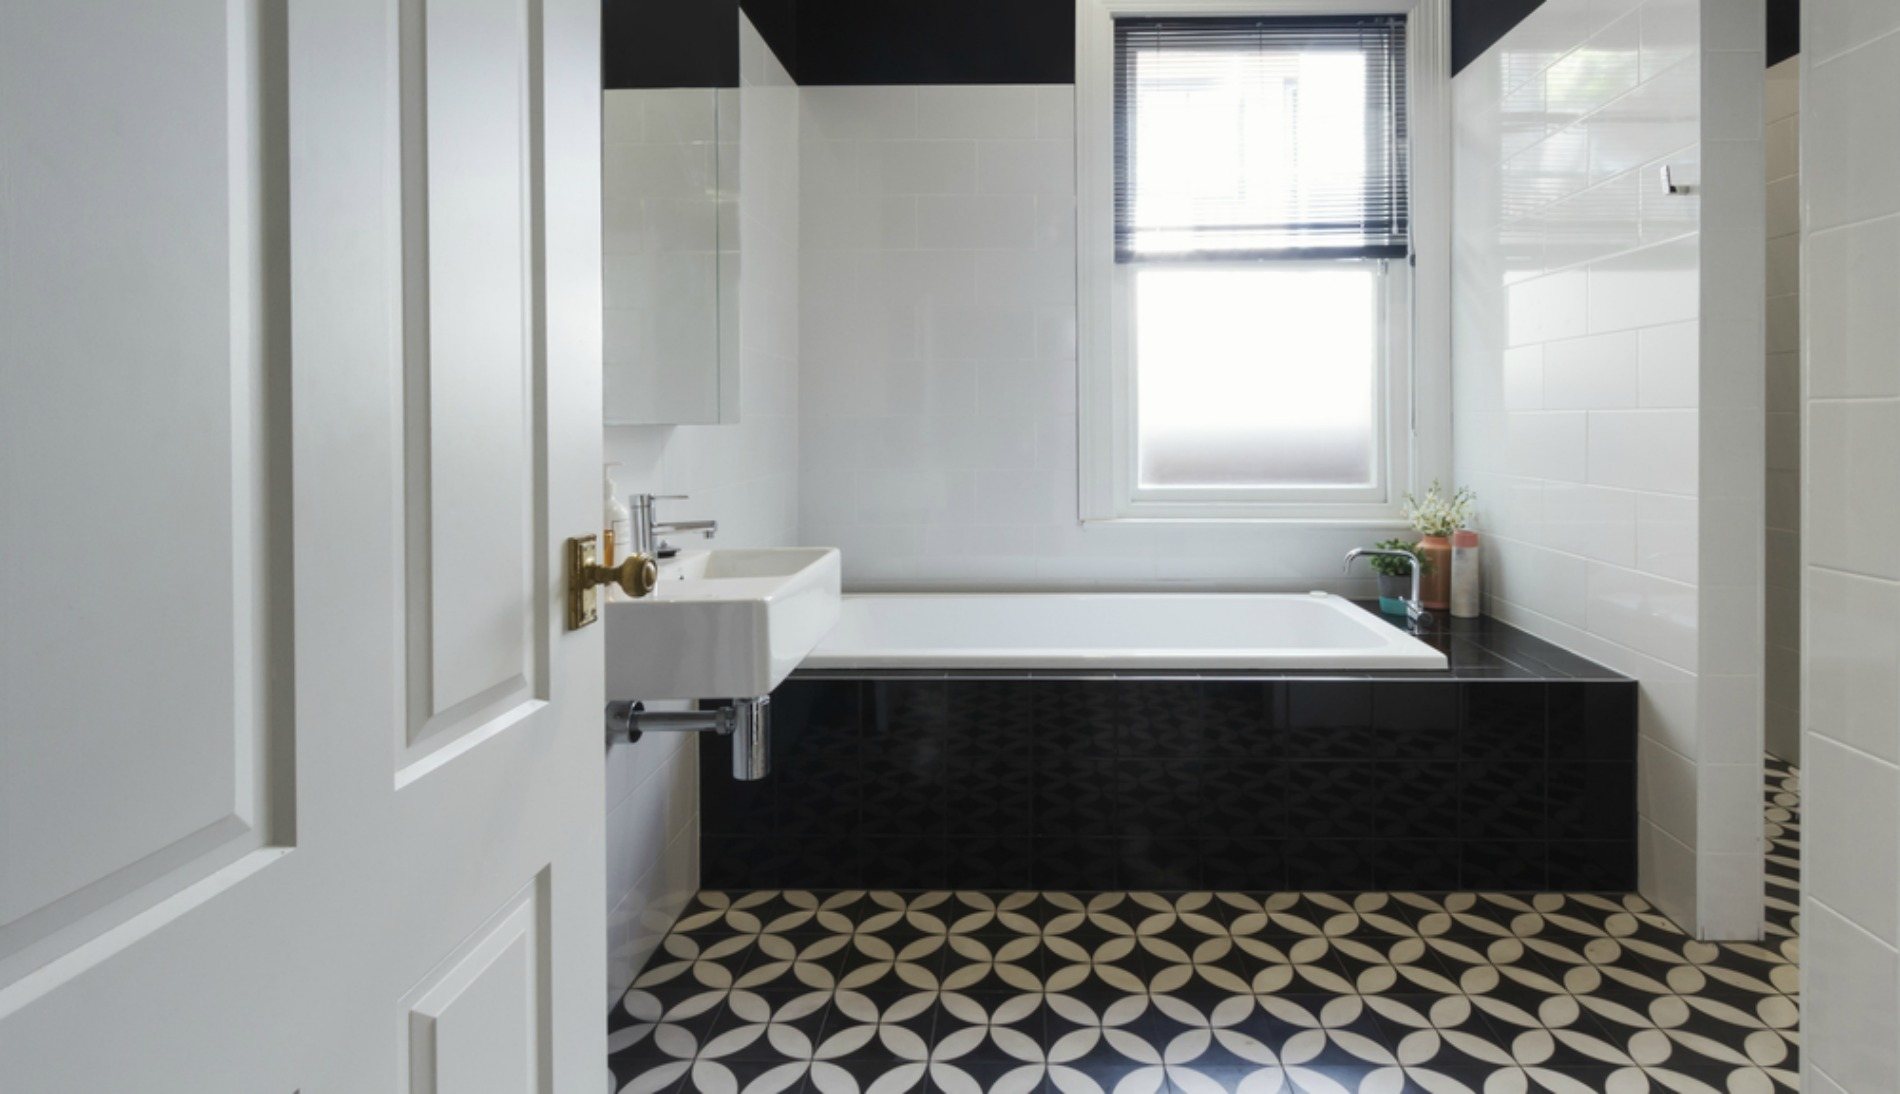 Bathrooms with Black and White Patterned Floor Tiles